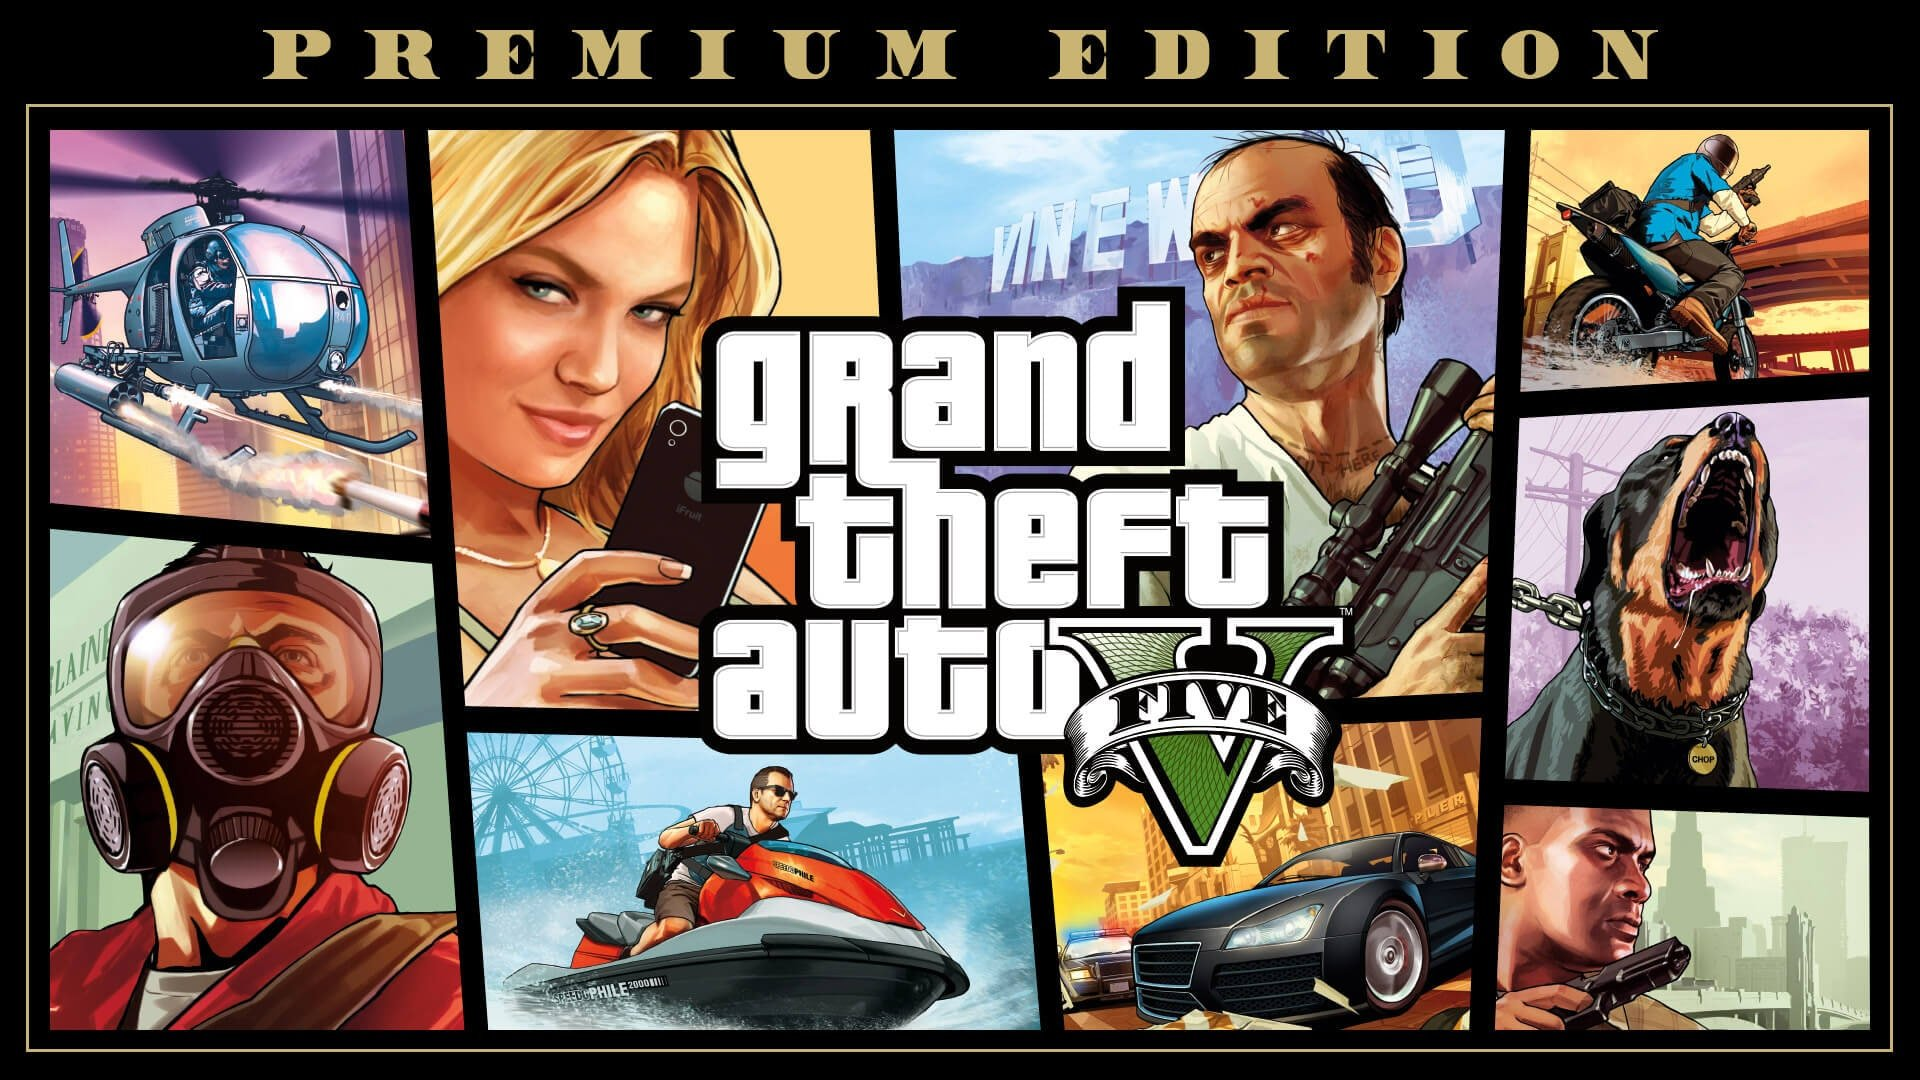 GTA V 140 million sold